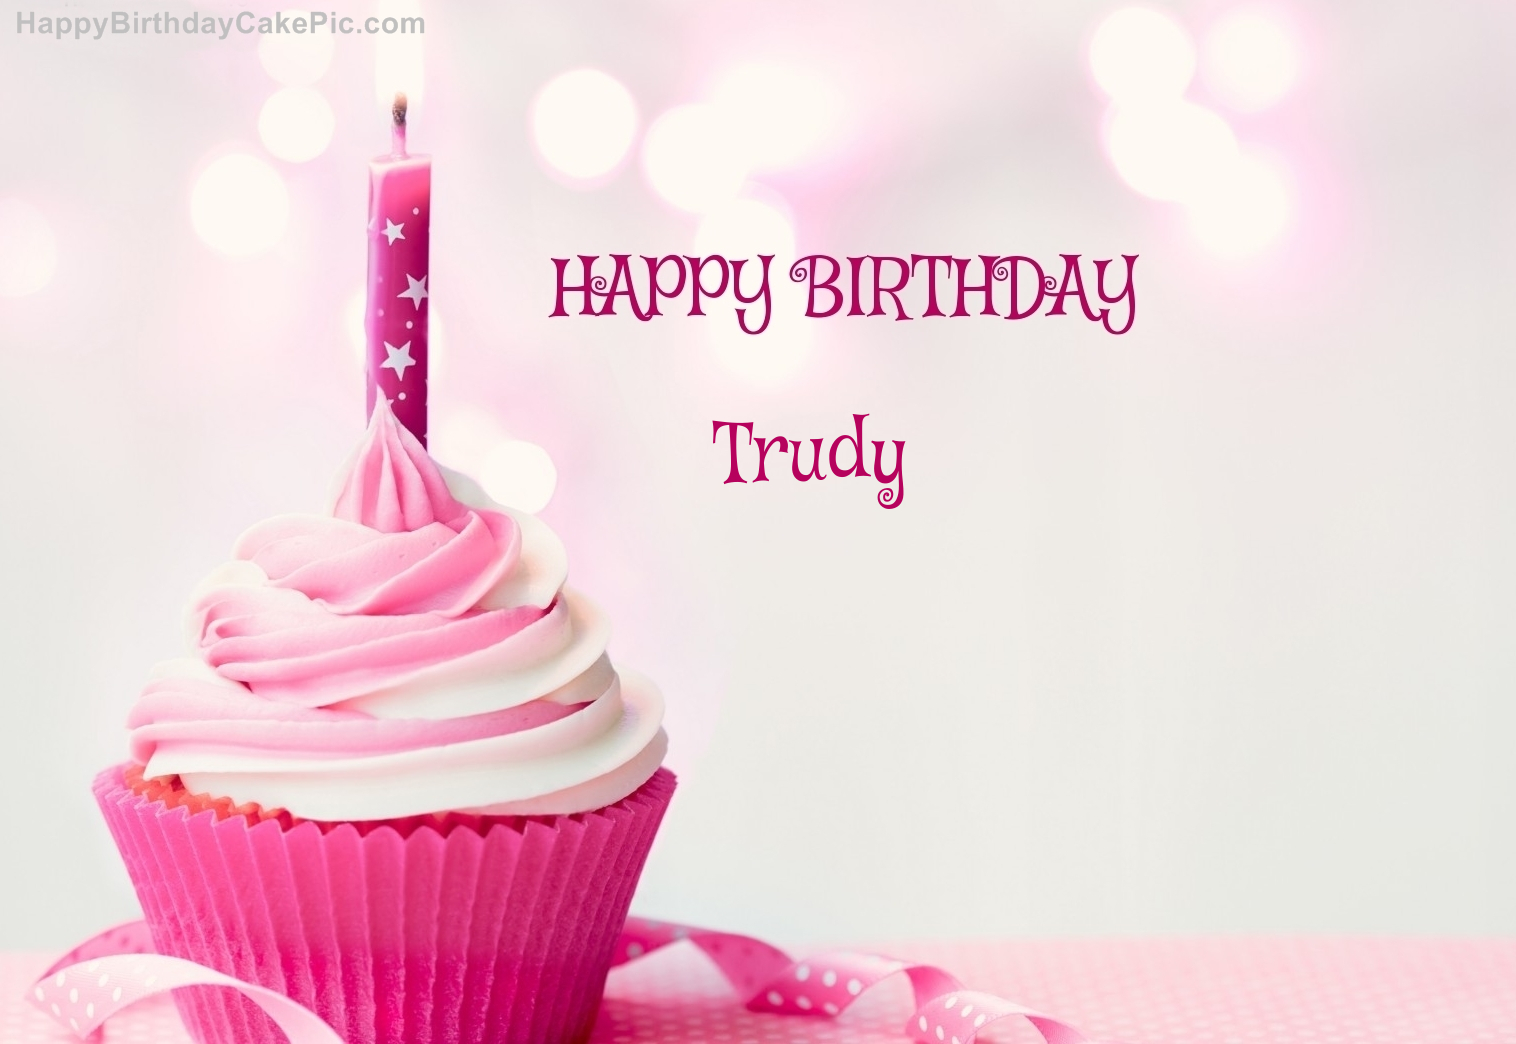 Happy Birthday Cupcake Candle Pink Cake For Trudy